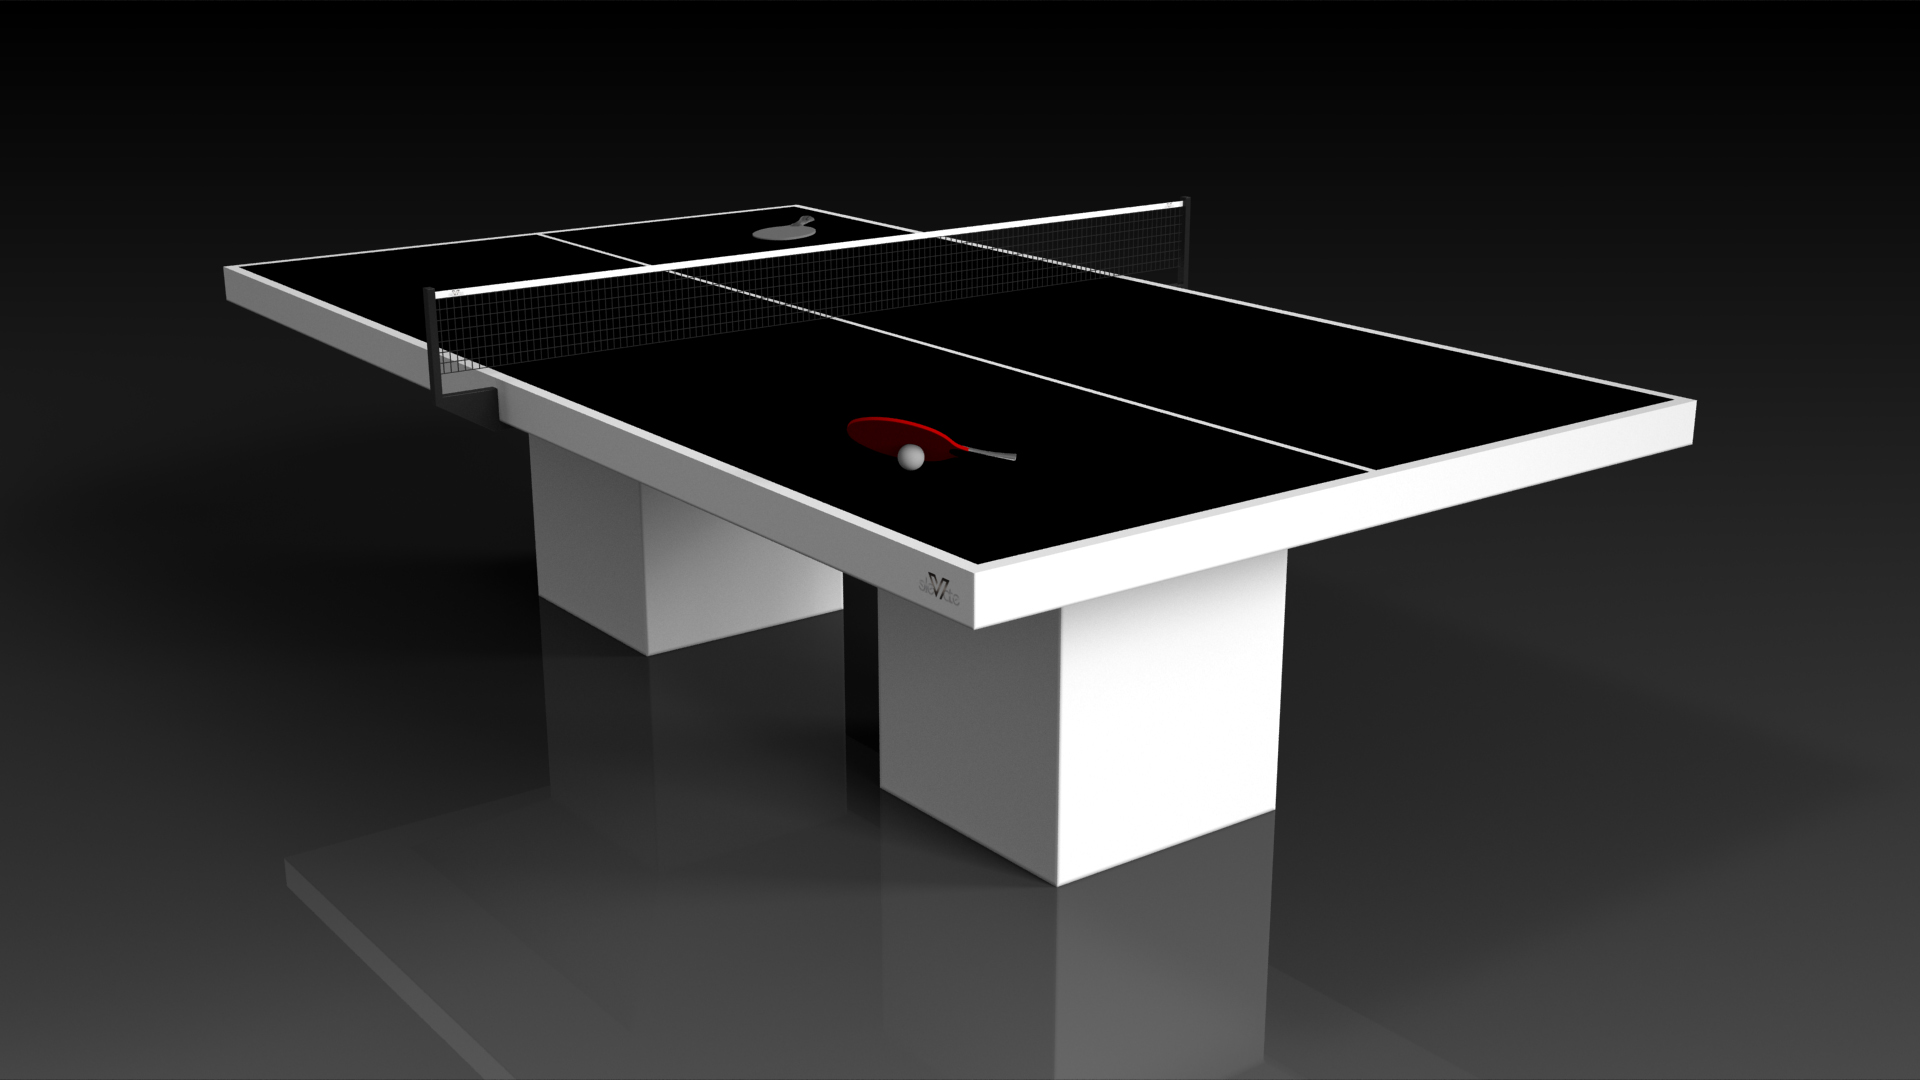 Trestle White Table Tennis